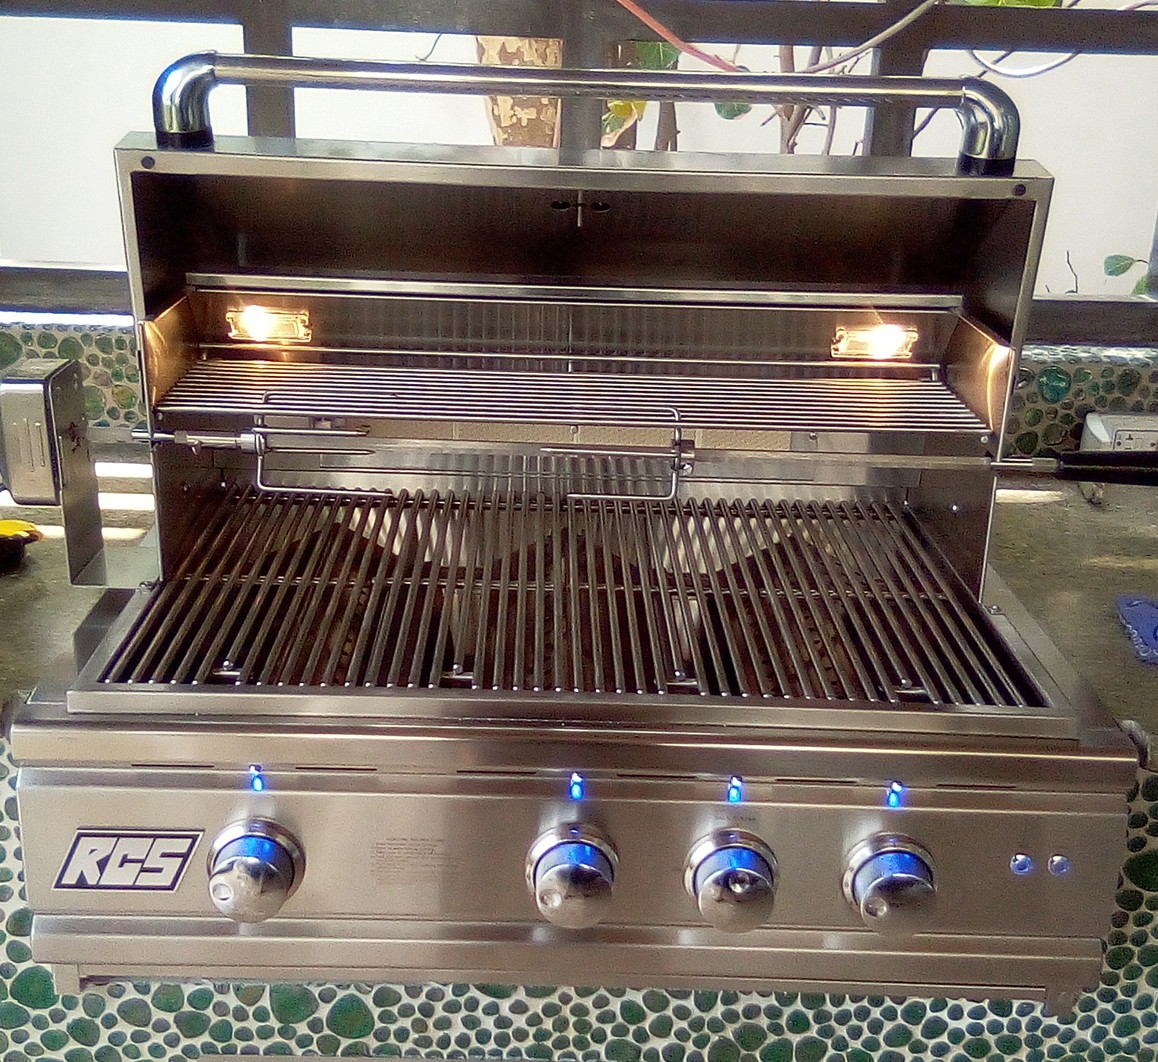 RCS Grill After